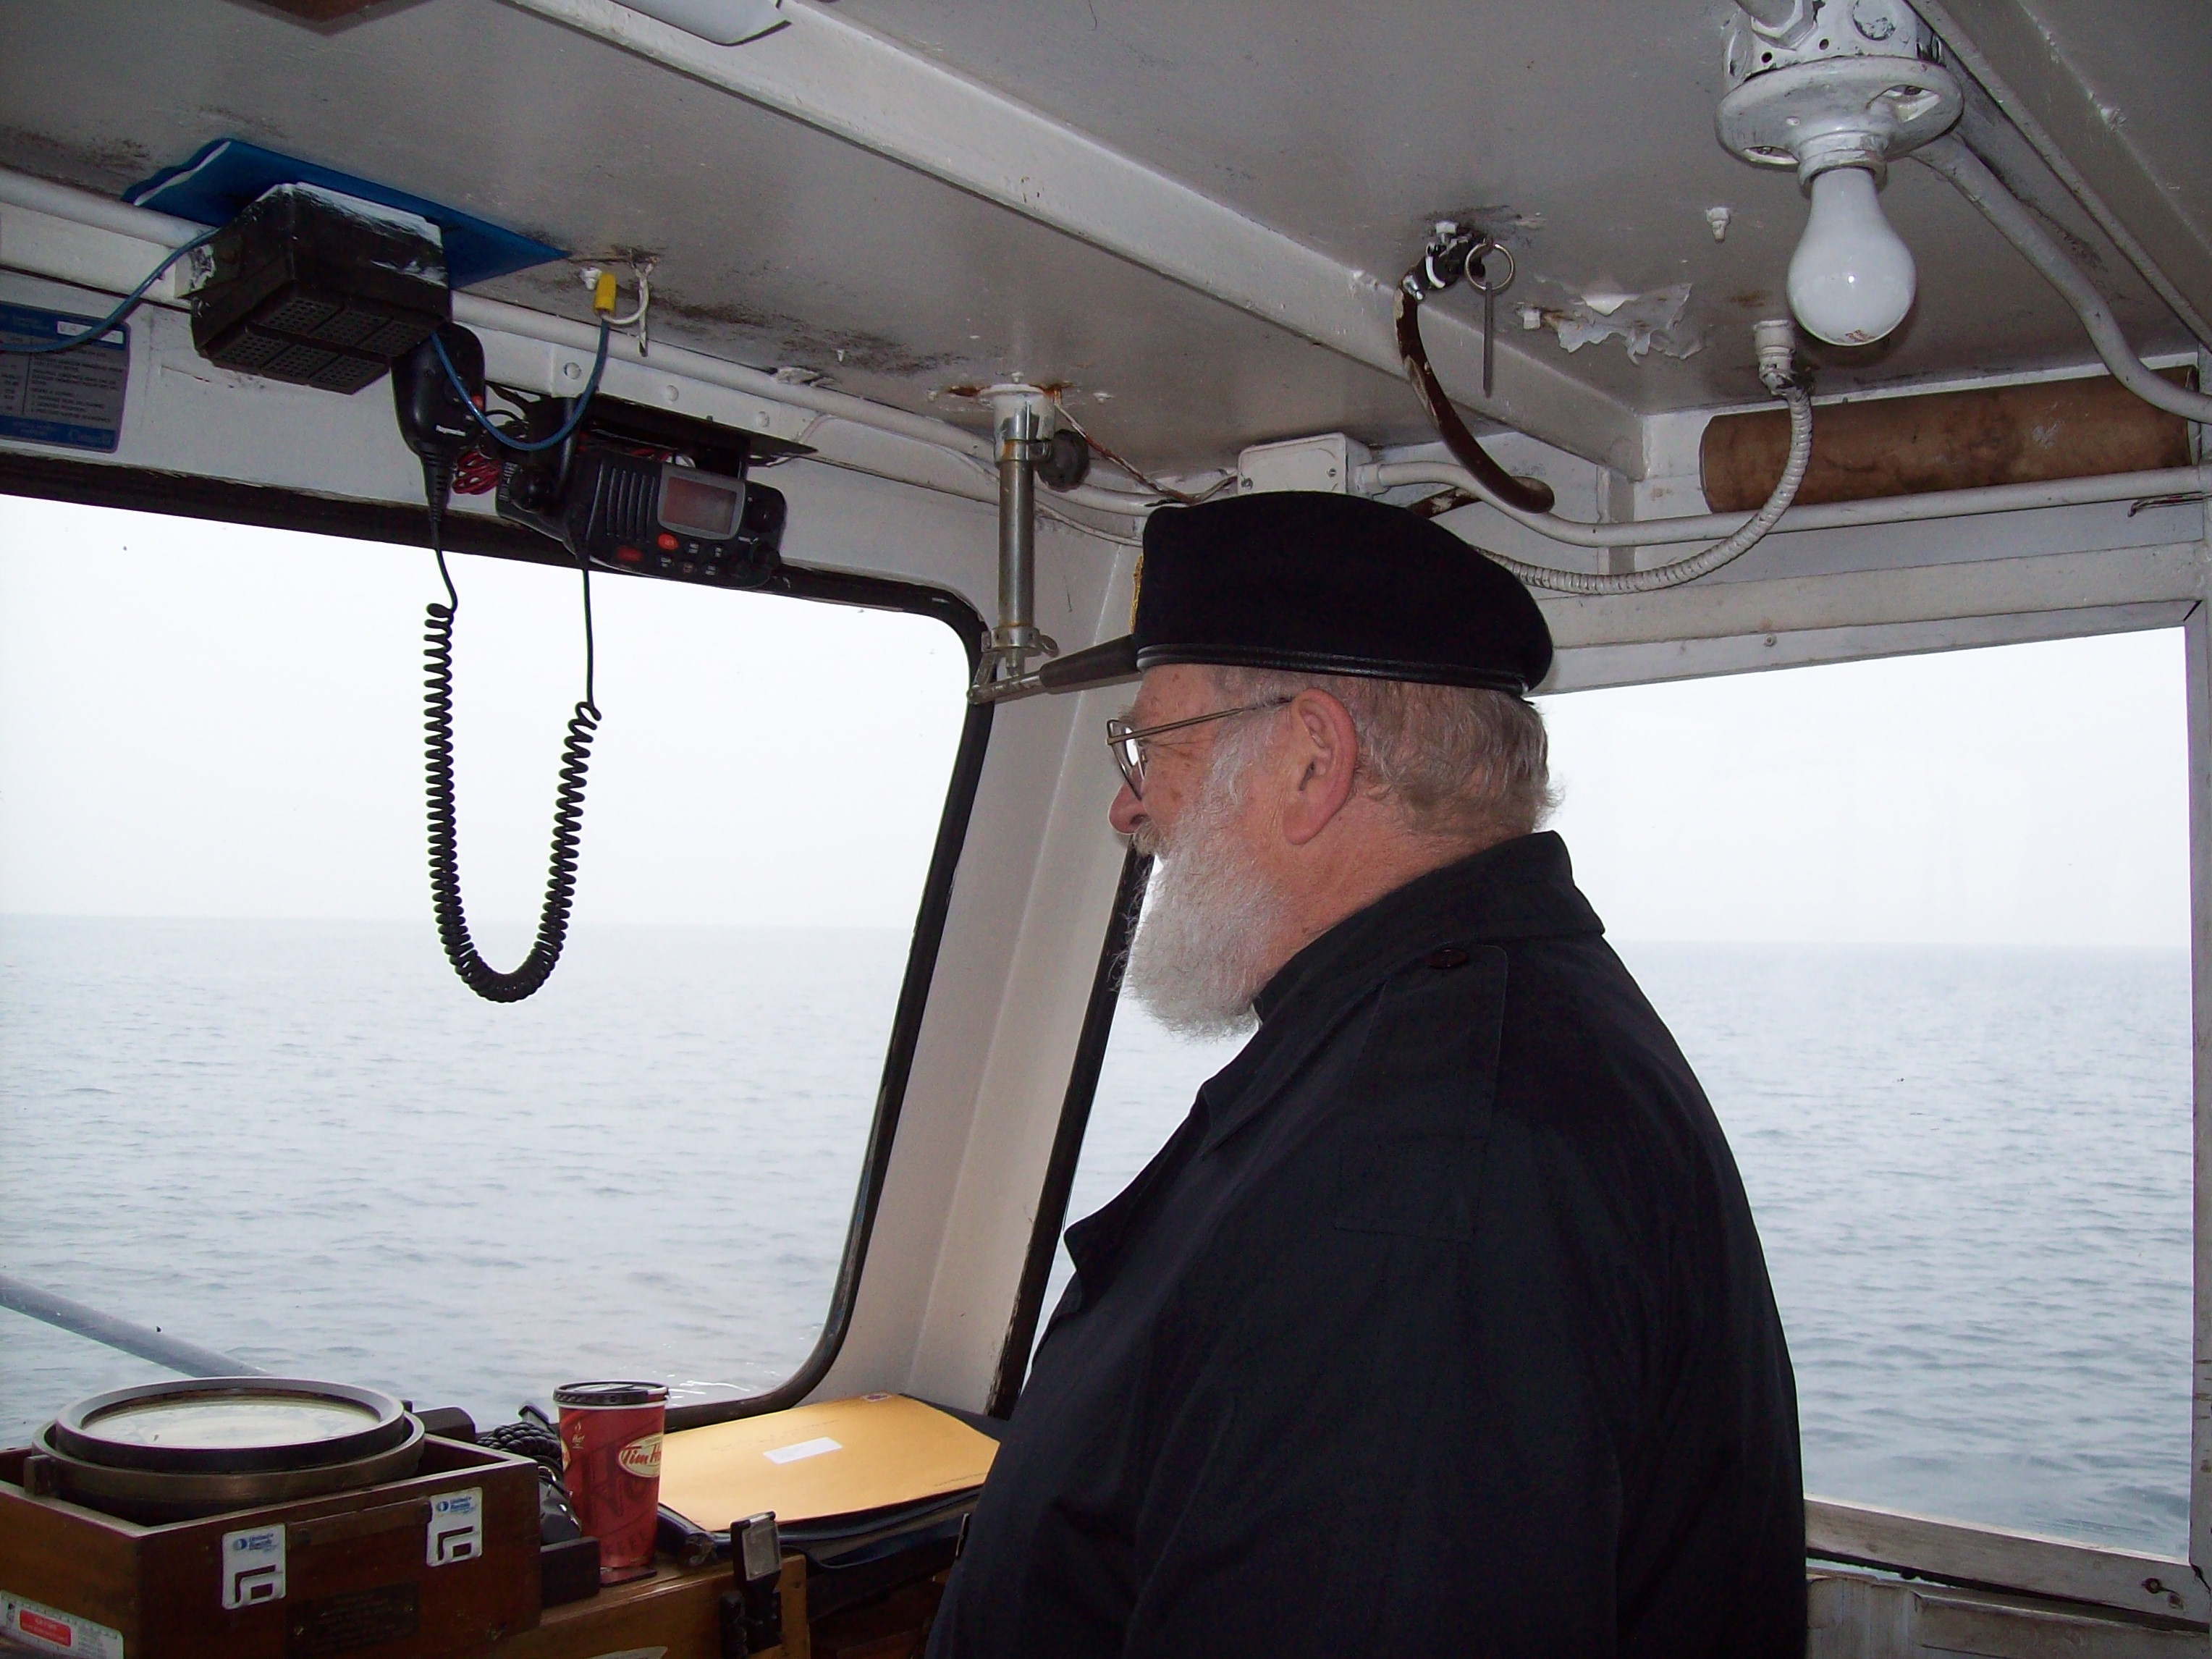 And the Padre at the Helm!